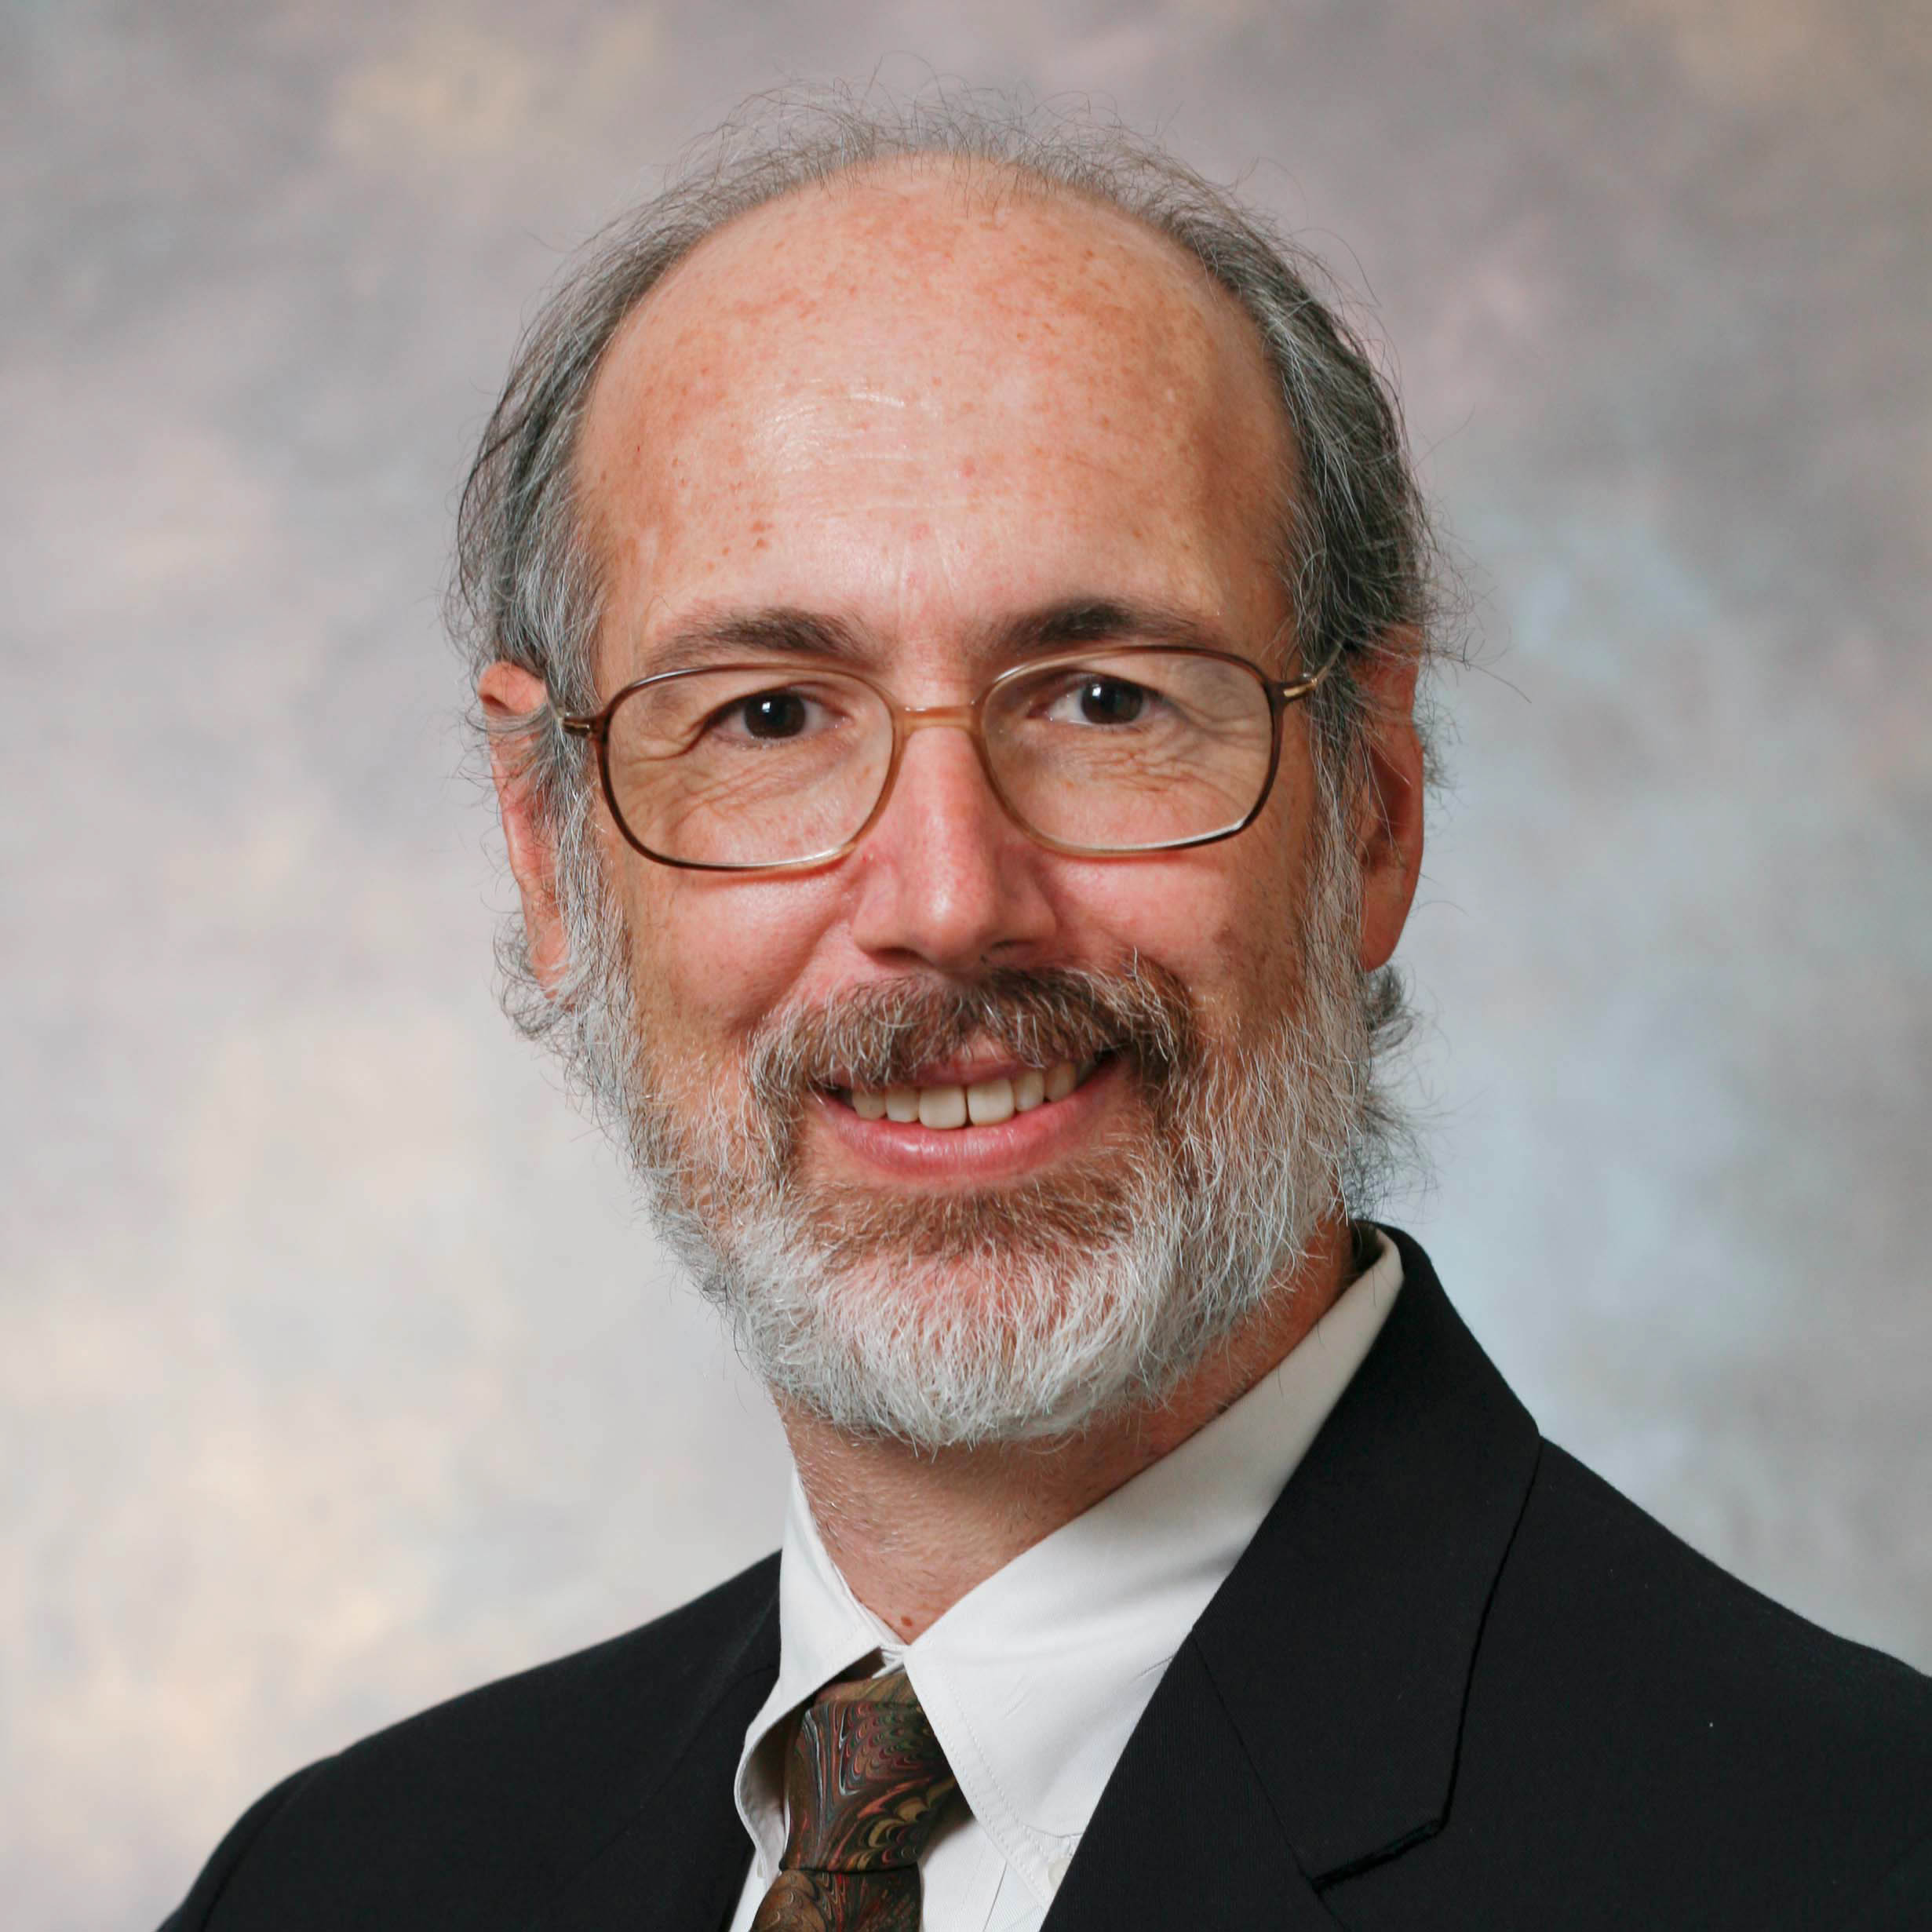 Lawrence Rizzolo